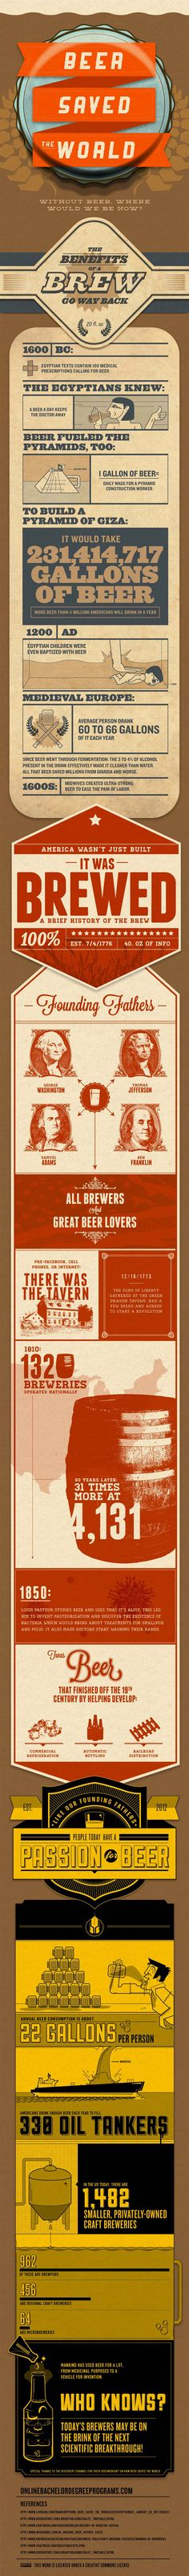 Amazing infographic: How Beer Saved the World via @FastCoDesign